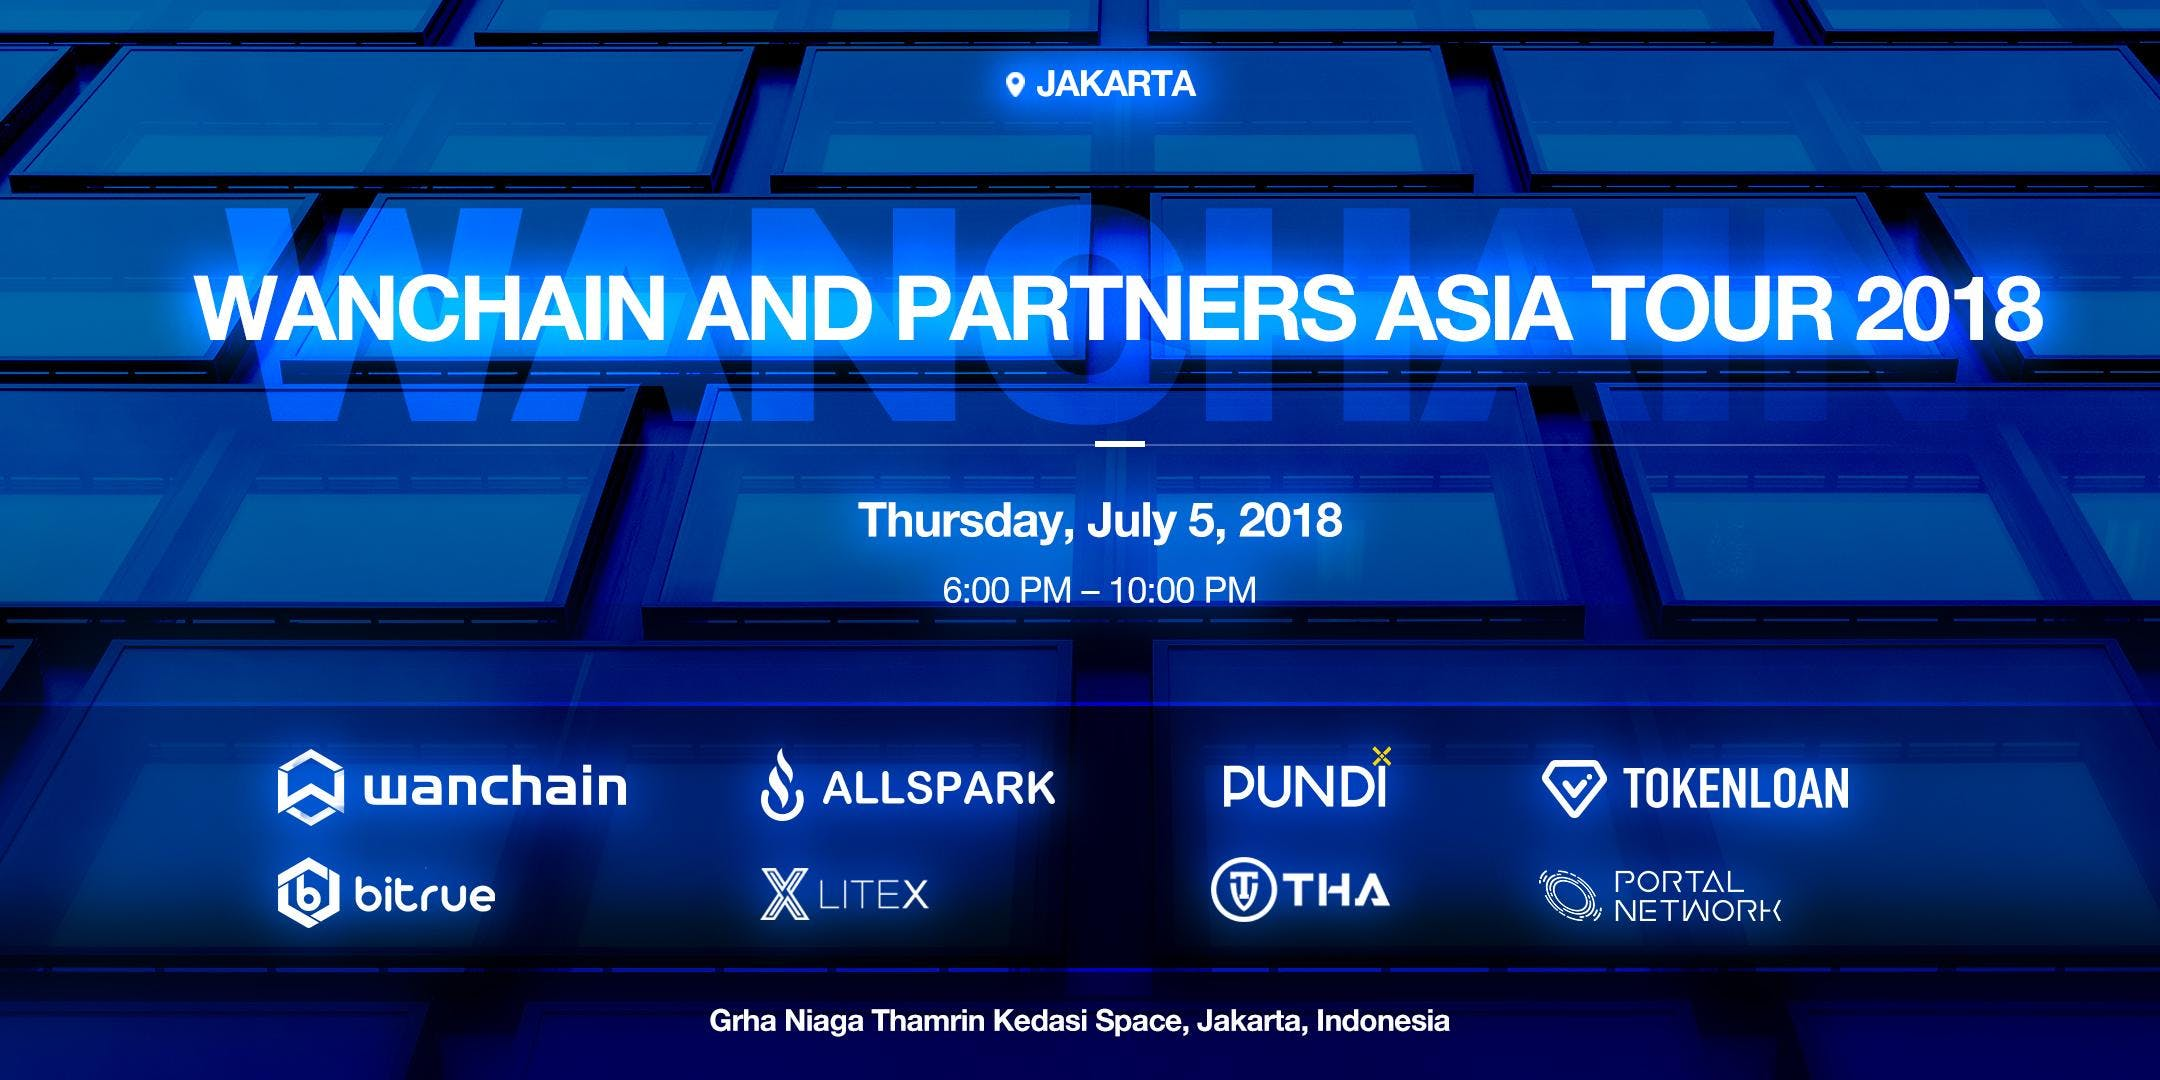 Cryptocurrency &amp Blockchain 2.0 WANCHAIN AND PARTNERS COMING TO JAKARTA